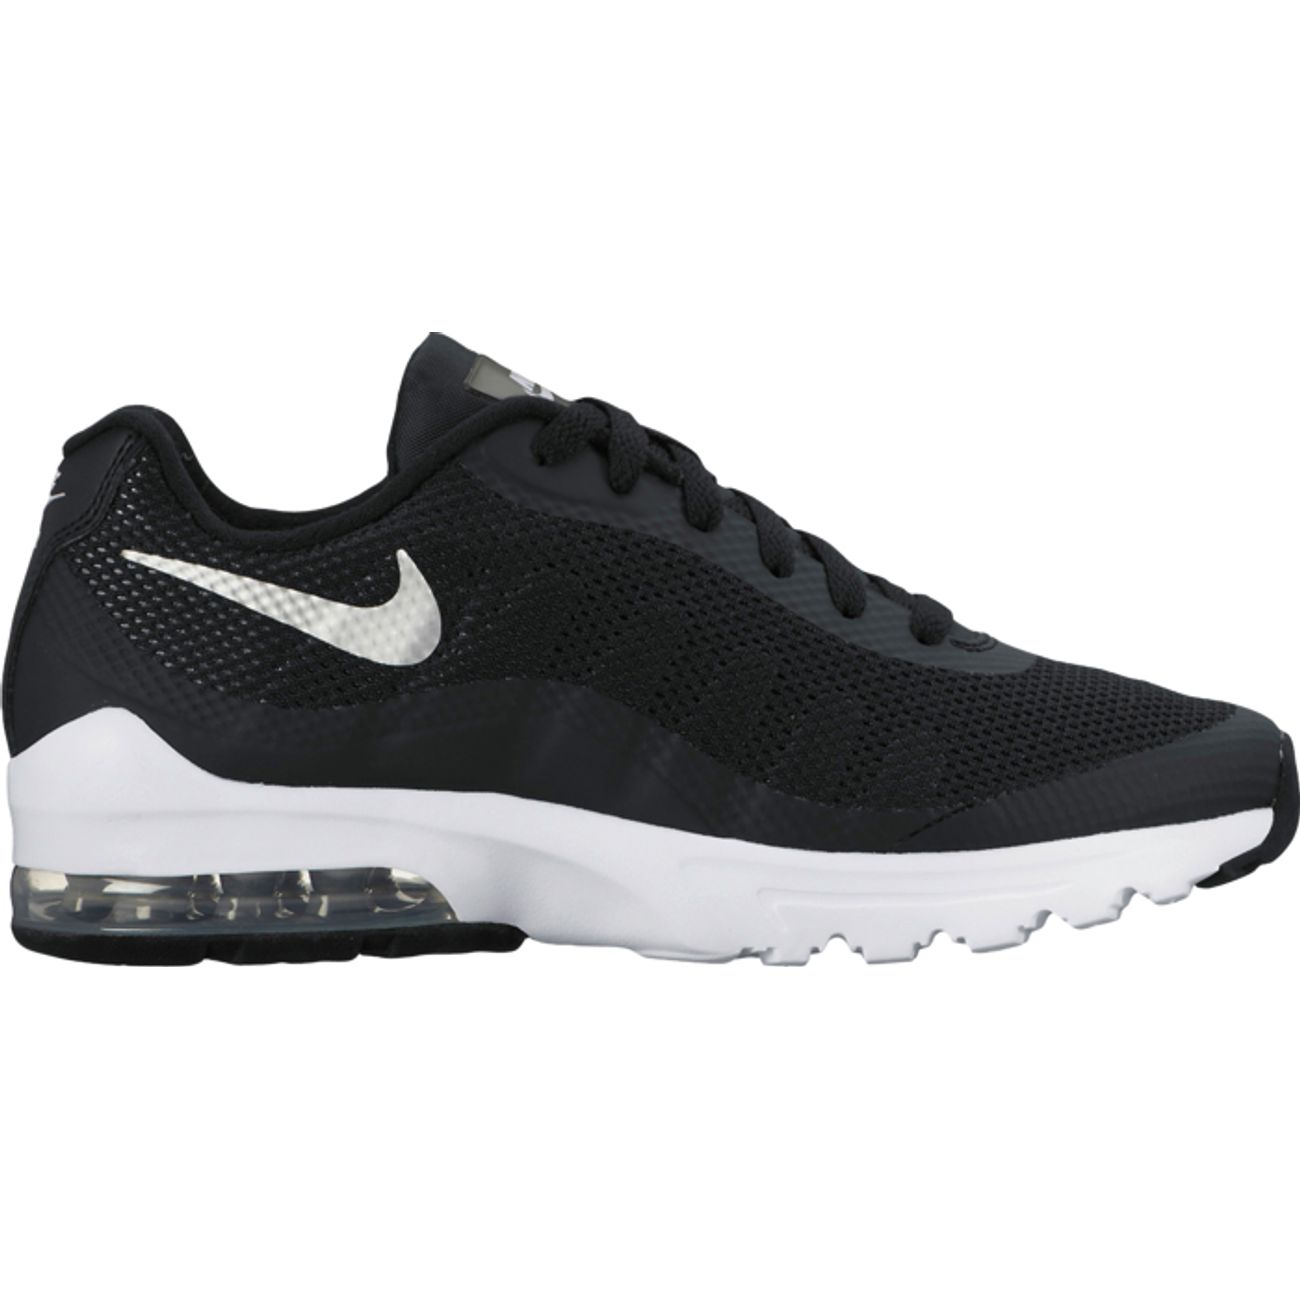 online retailer 25e23 be334 CHAUSSURES BASSES Multisport femme NIKE AIR MAX INVIGOR ...